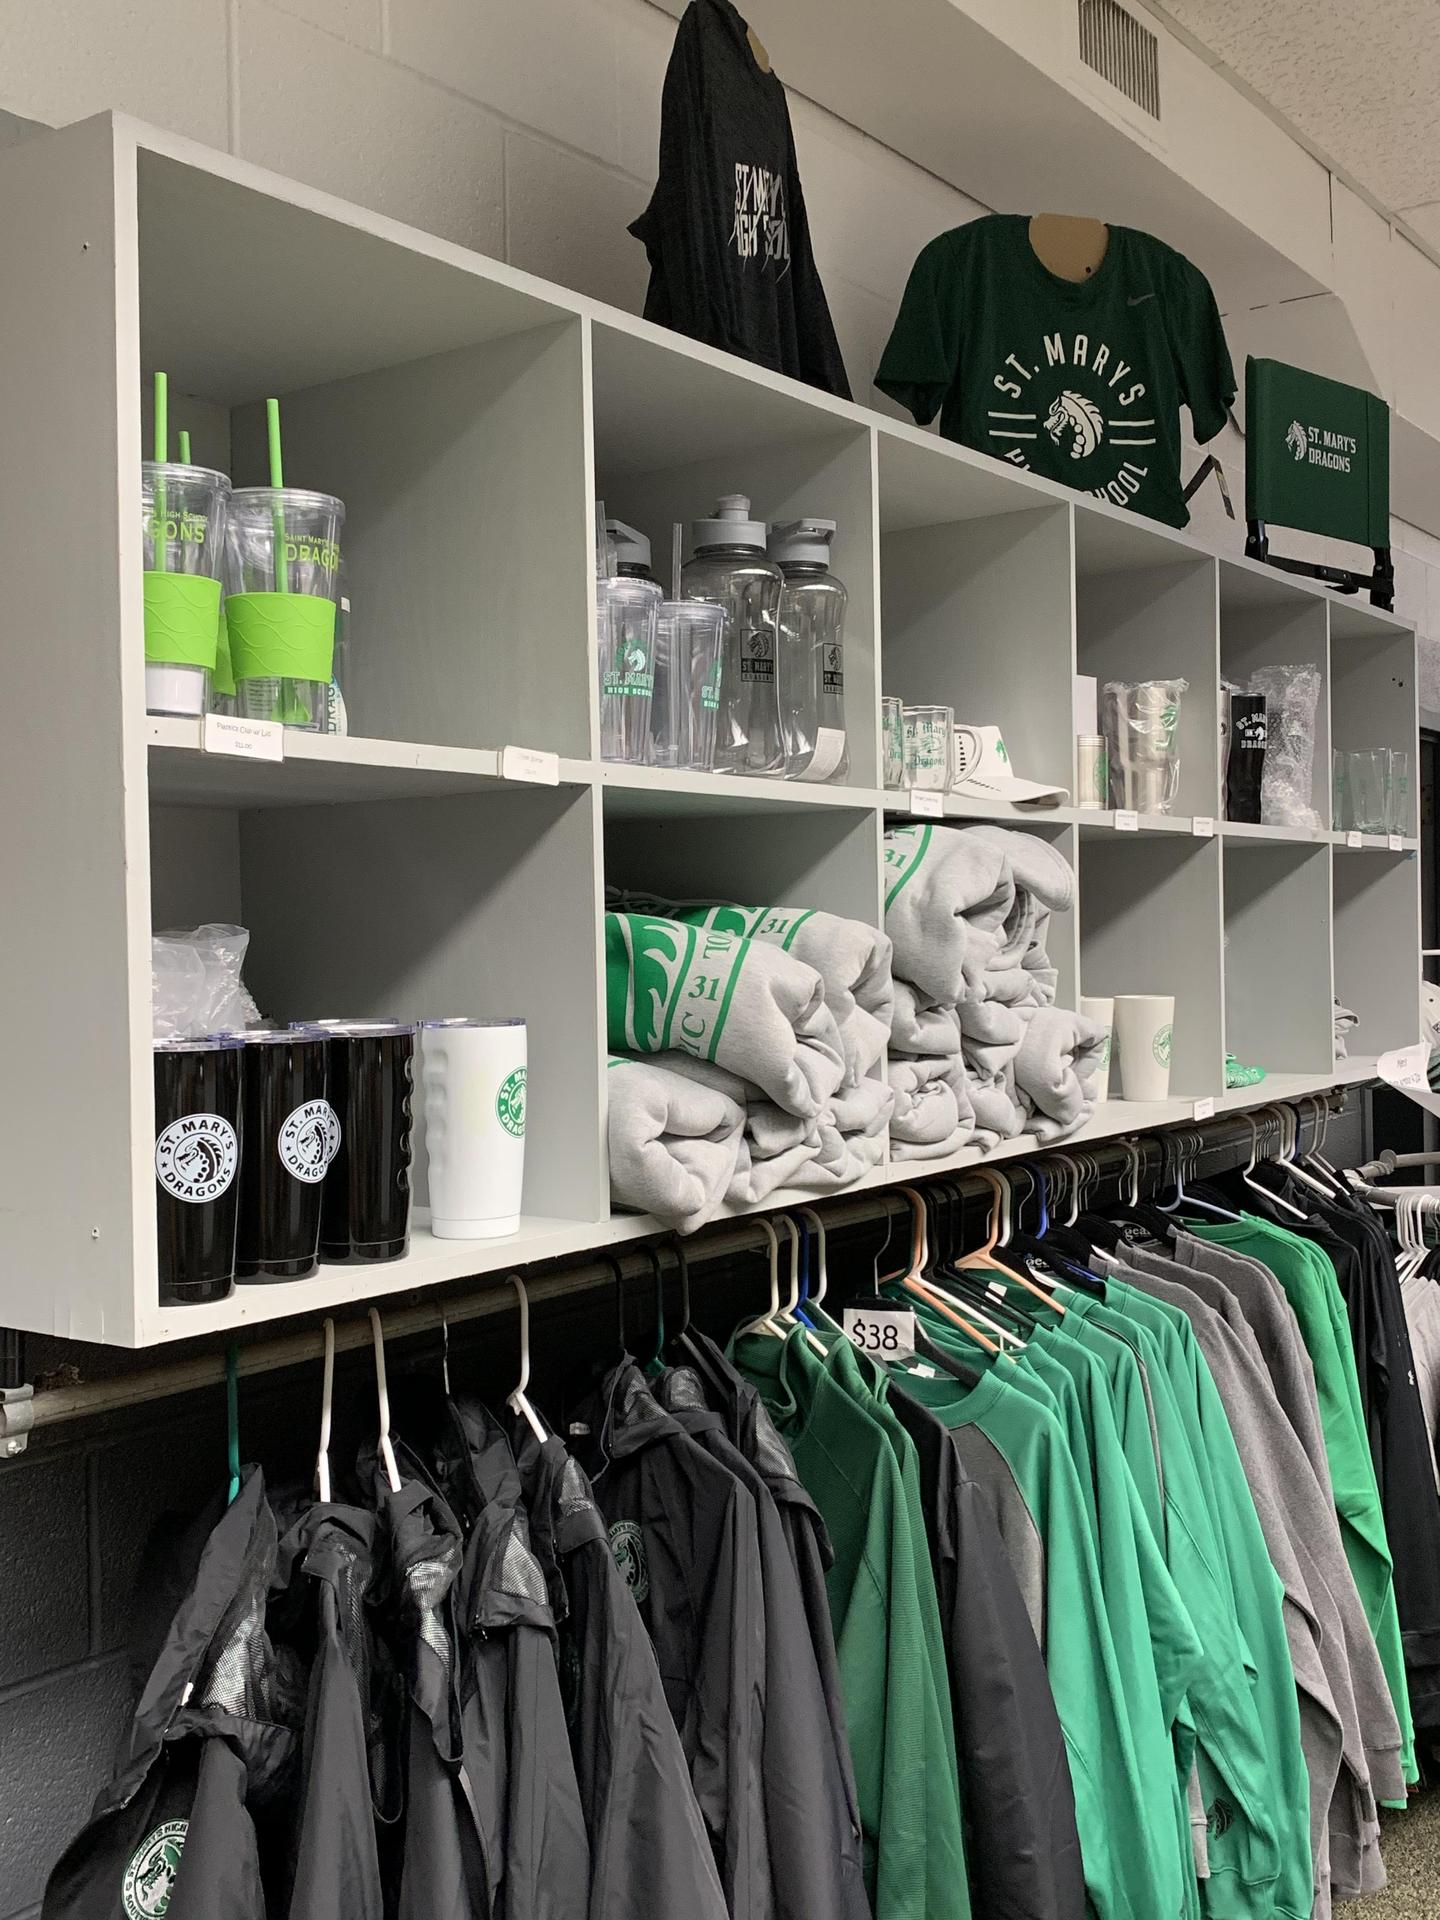 Image of the merchandise available in the Southside Legacy Shop